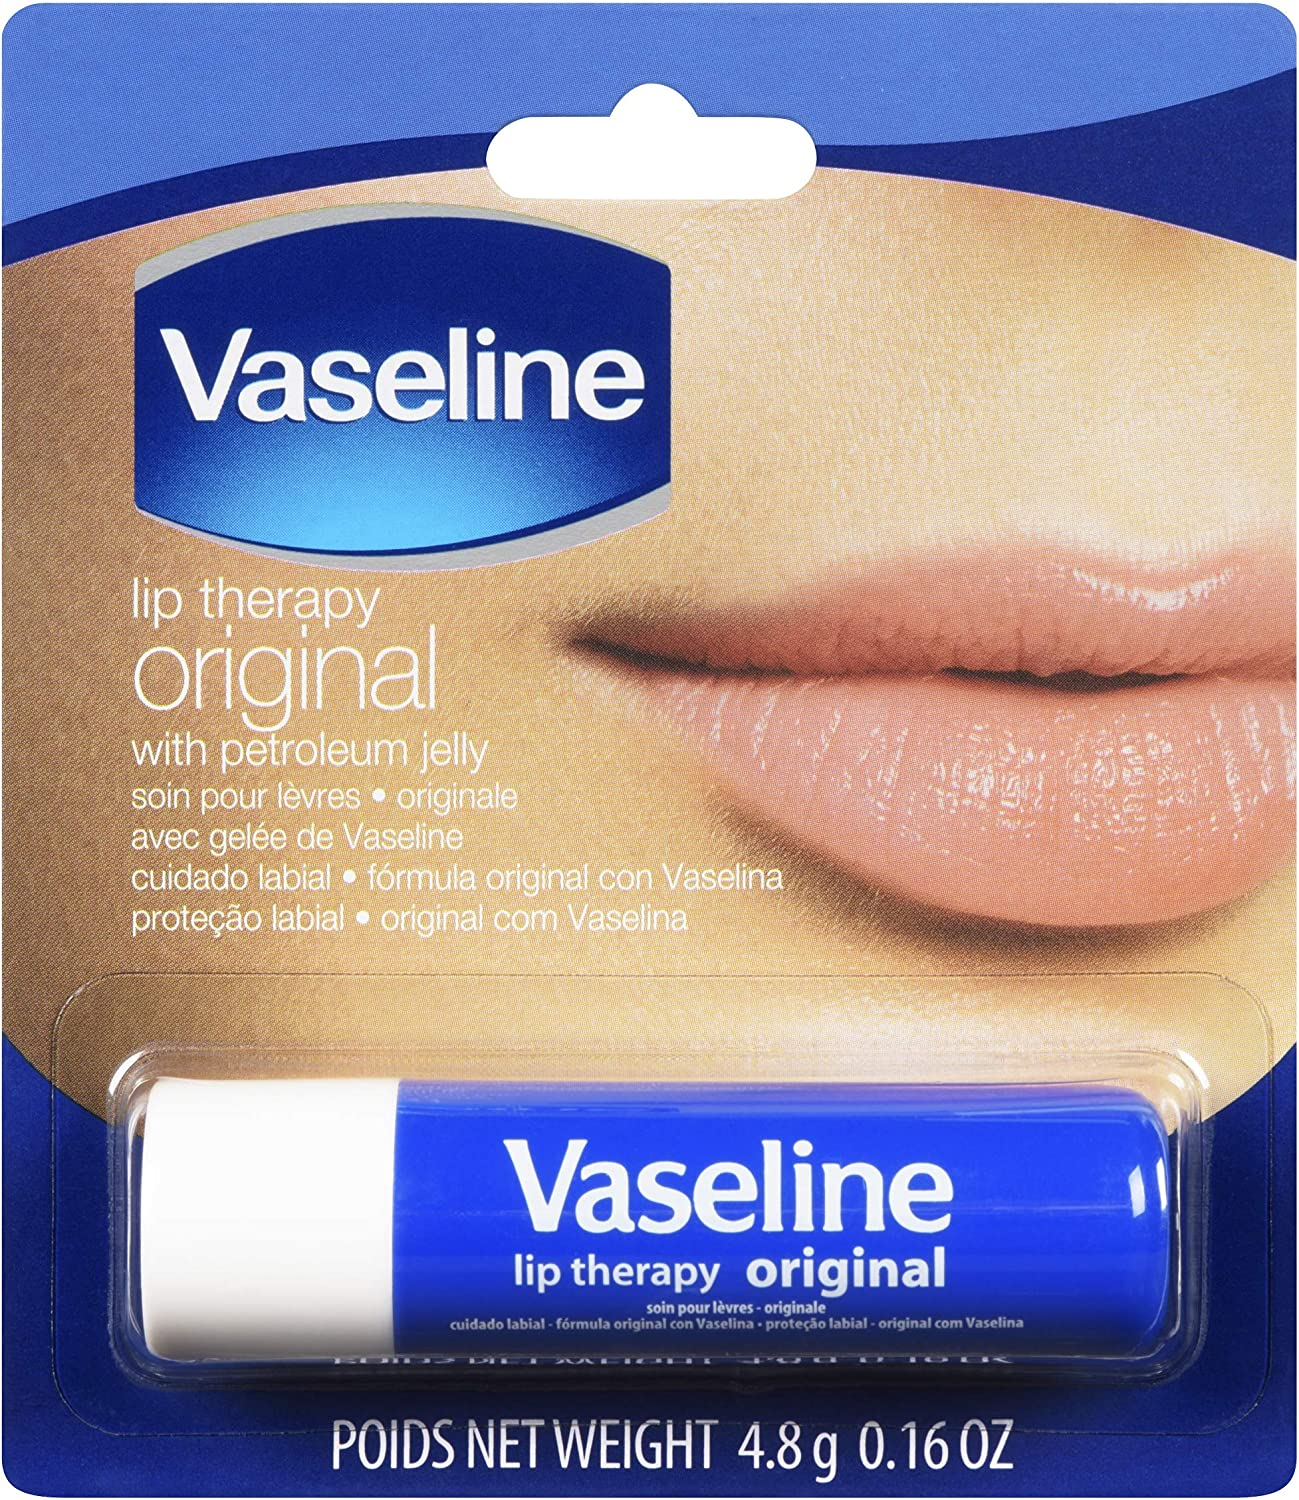 Vaseline Lip Therapy Original | Lip Balm with Petroleum Jelly for Providing Your Lips with Ultimate Hydration and Essential Moisture to Treat Chapped, Dry, Peeling, or Cracked Lips; 0.16 Oz (3 Pack)